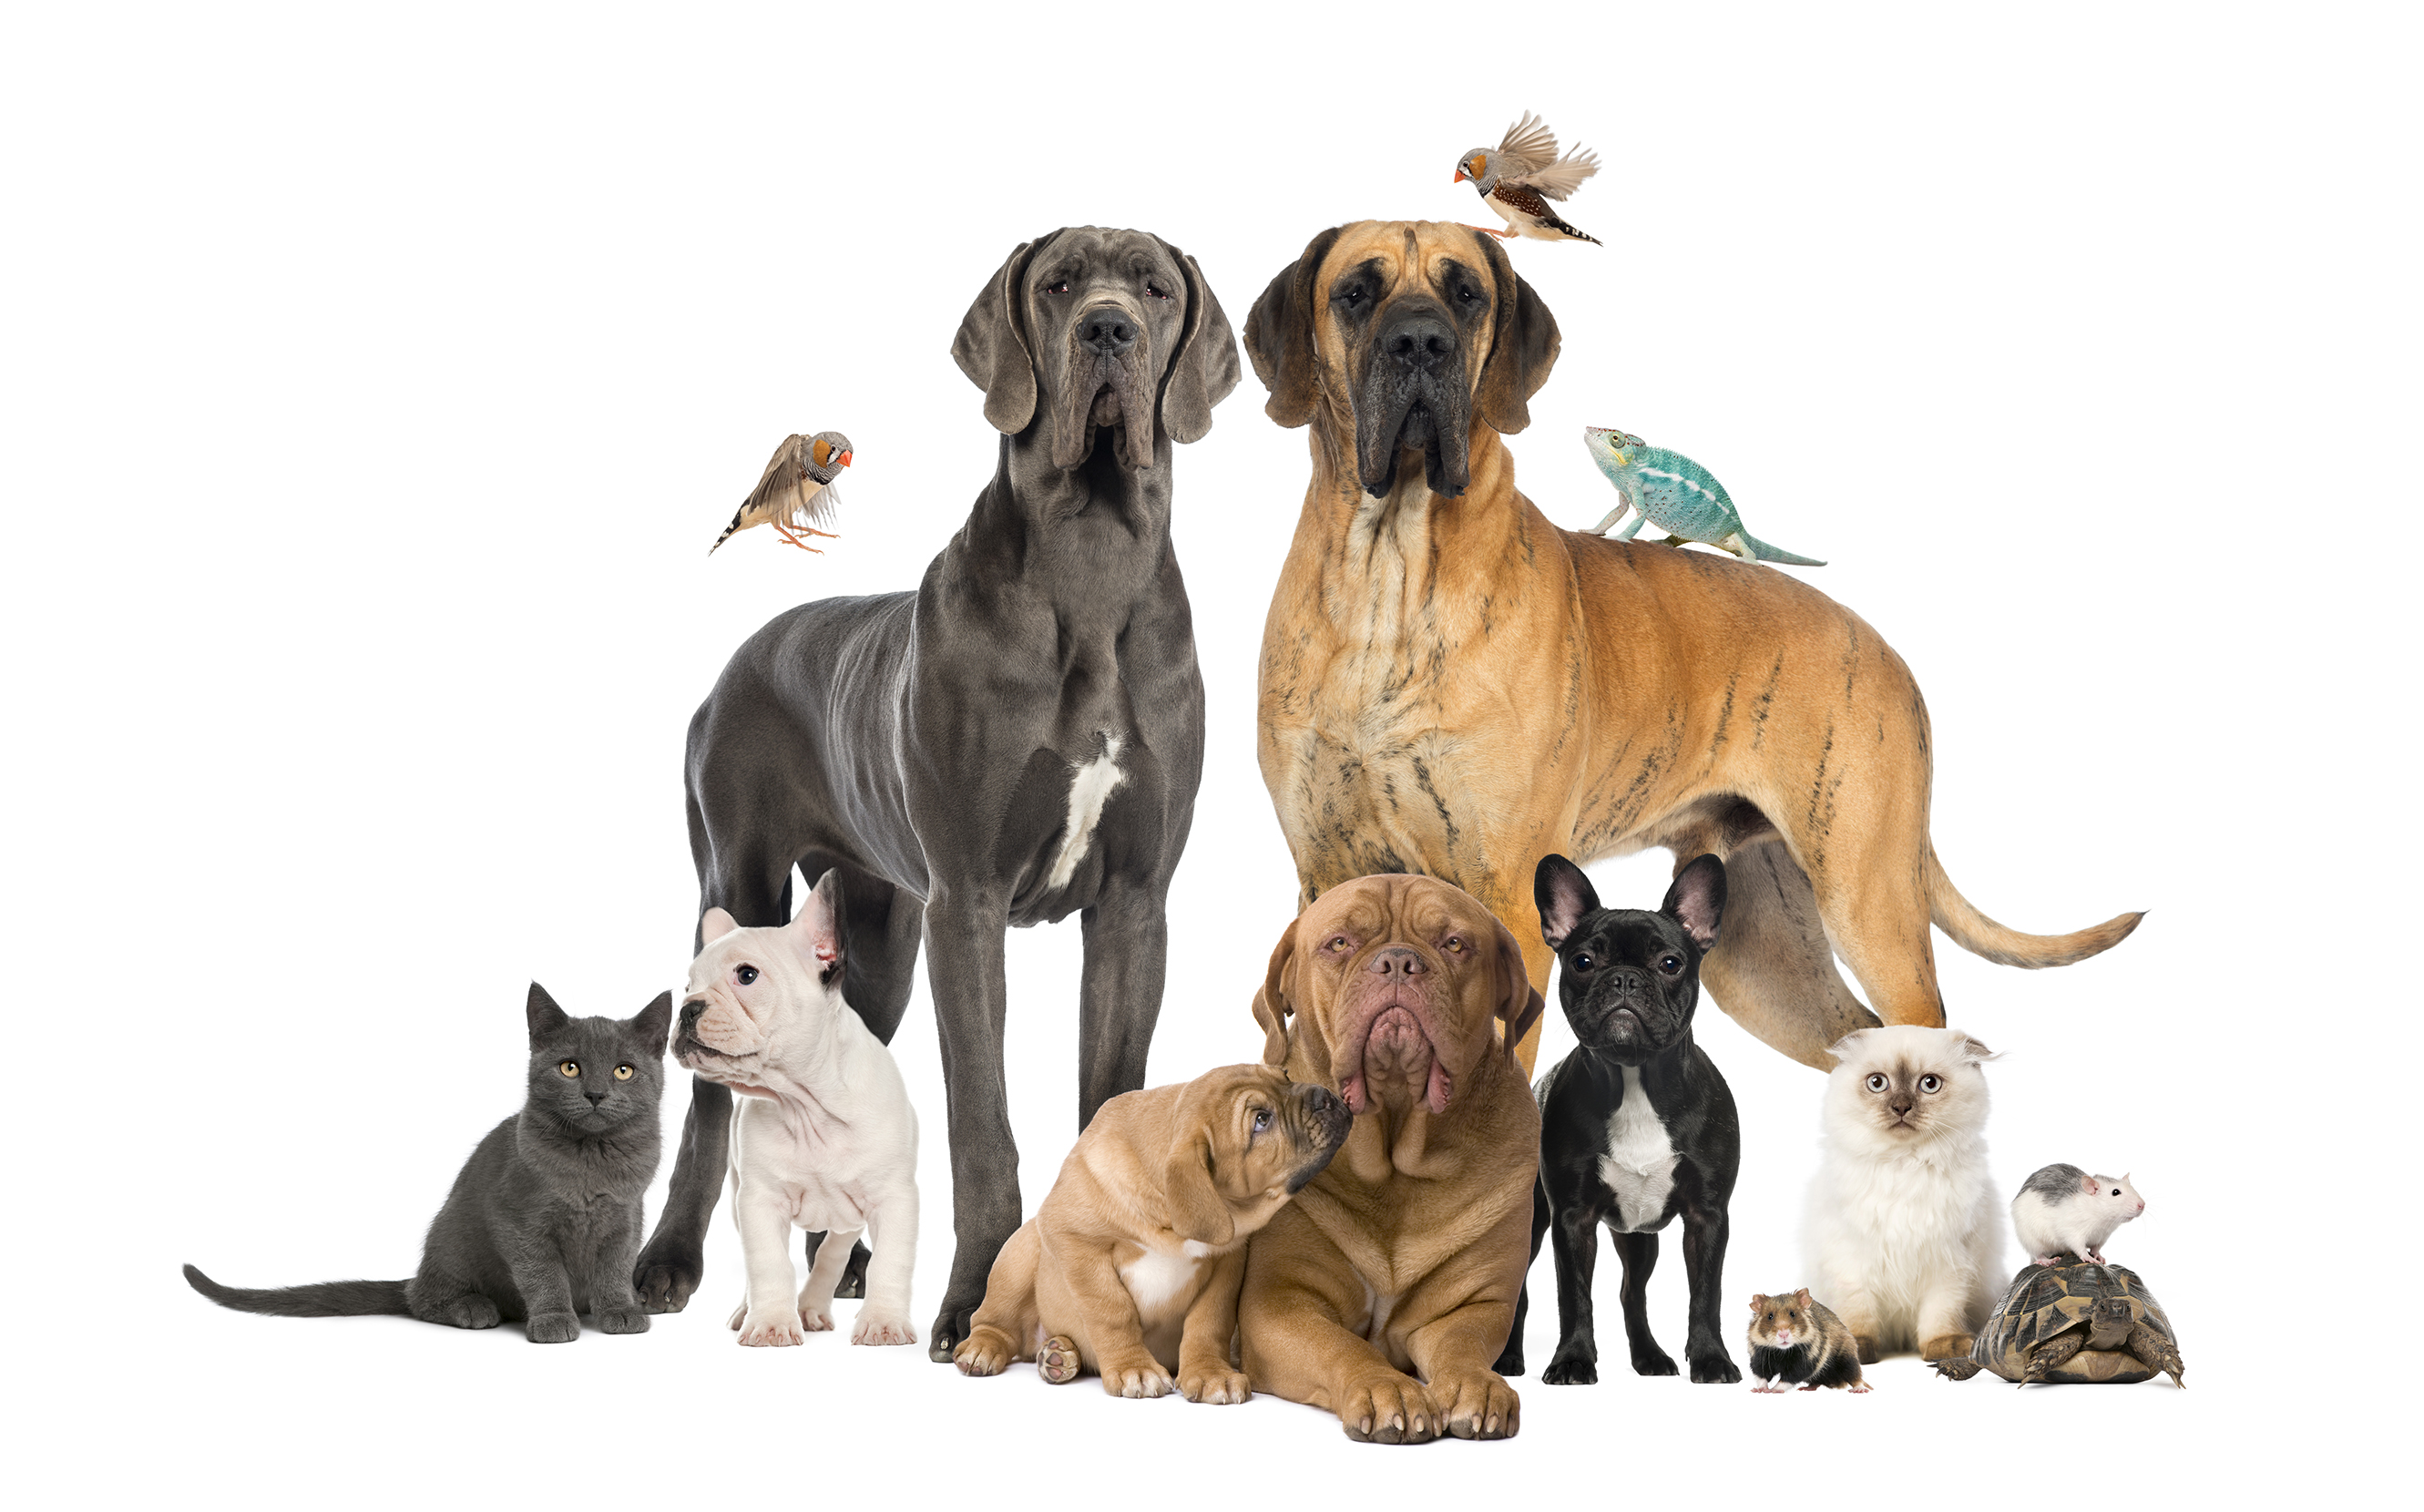 group-of-pets-dog-cat-bird-reptile-rabbi